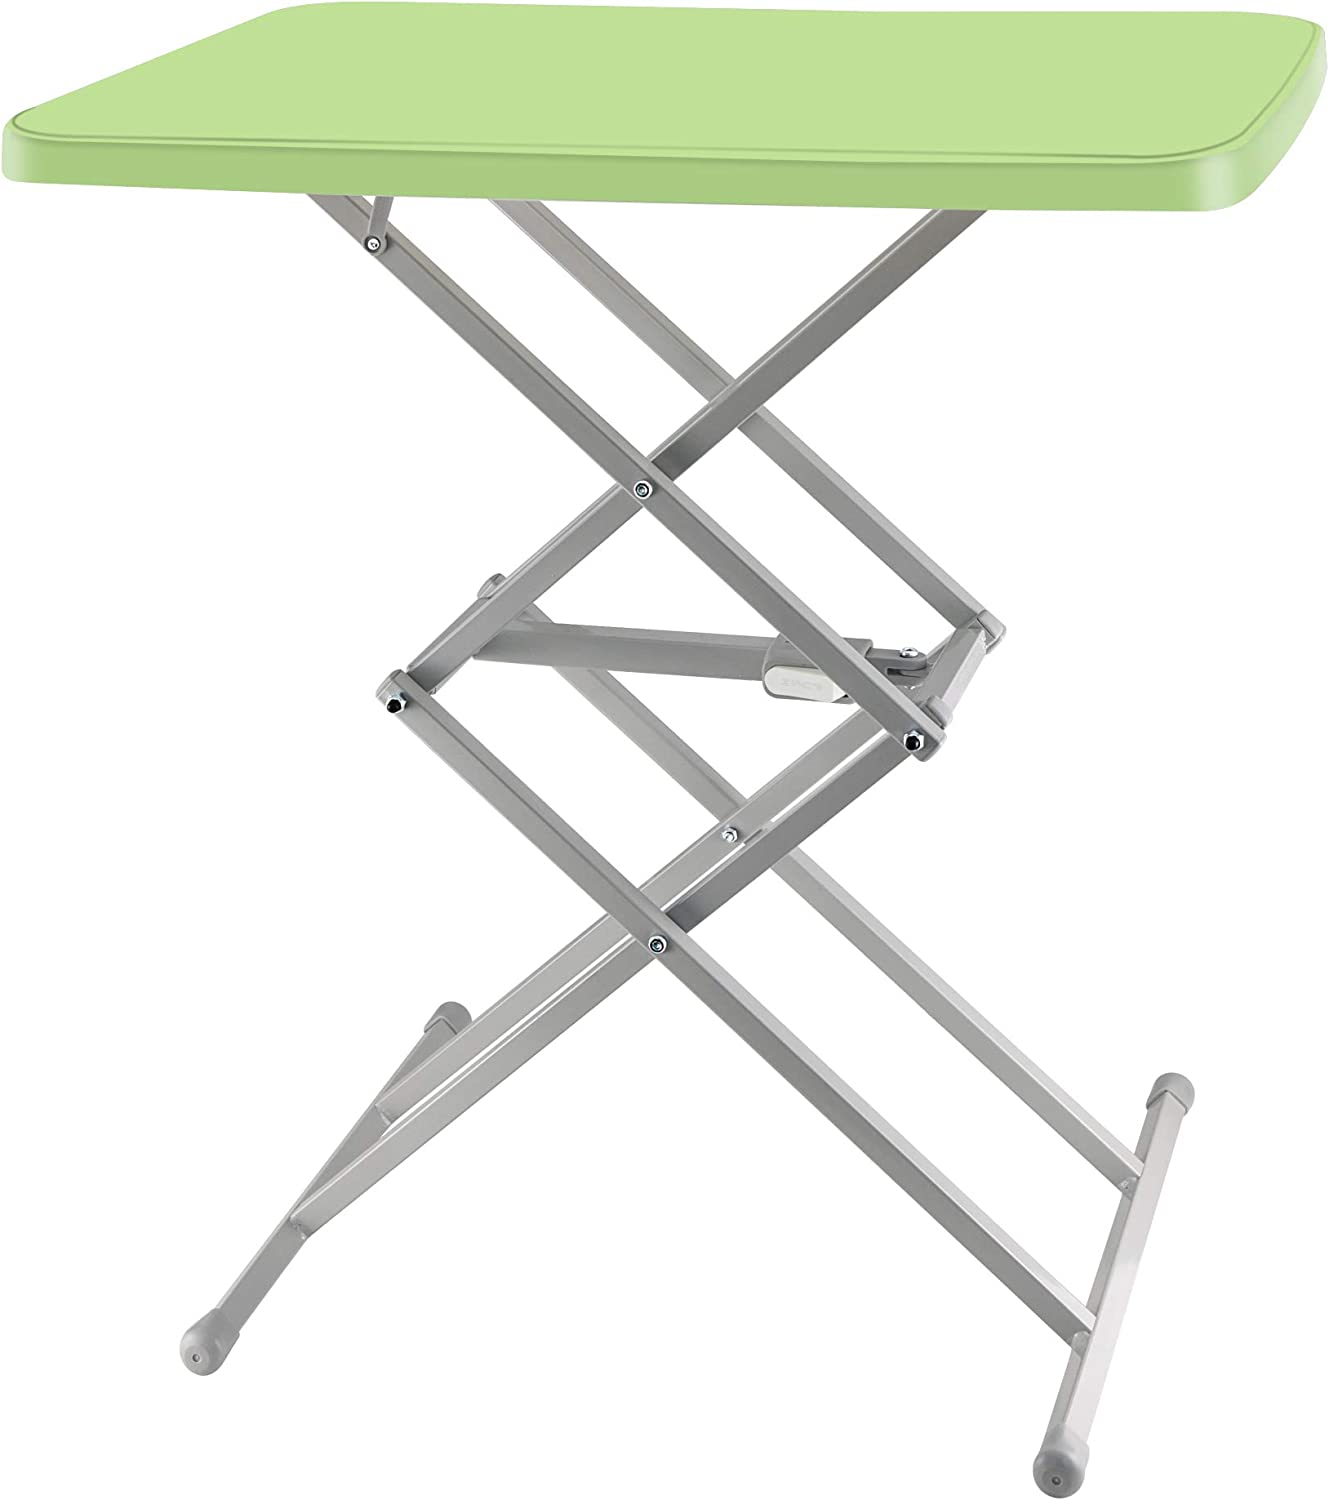 SOUNDANCE Adjustable Folding Table, Lightweight and Portable TV Tray, Sturdy Dinner Tables for Eating, Easy to Fold and Put Away, Zero Assembly Required Desk for Indoor and Outdoor Use, Green